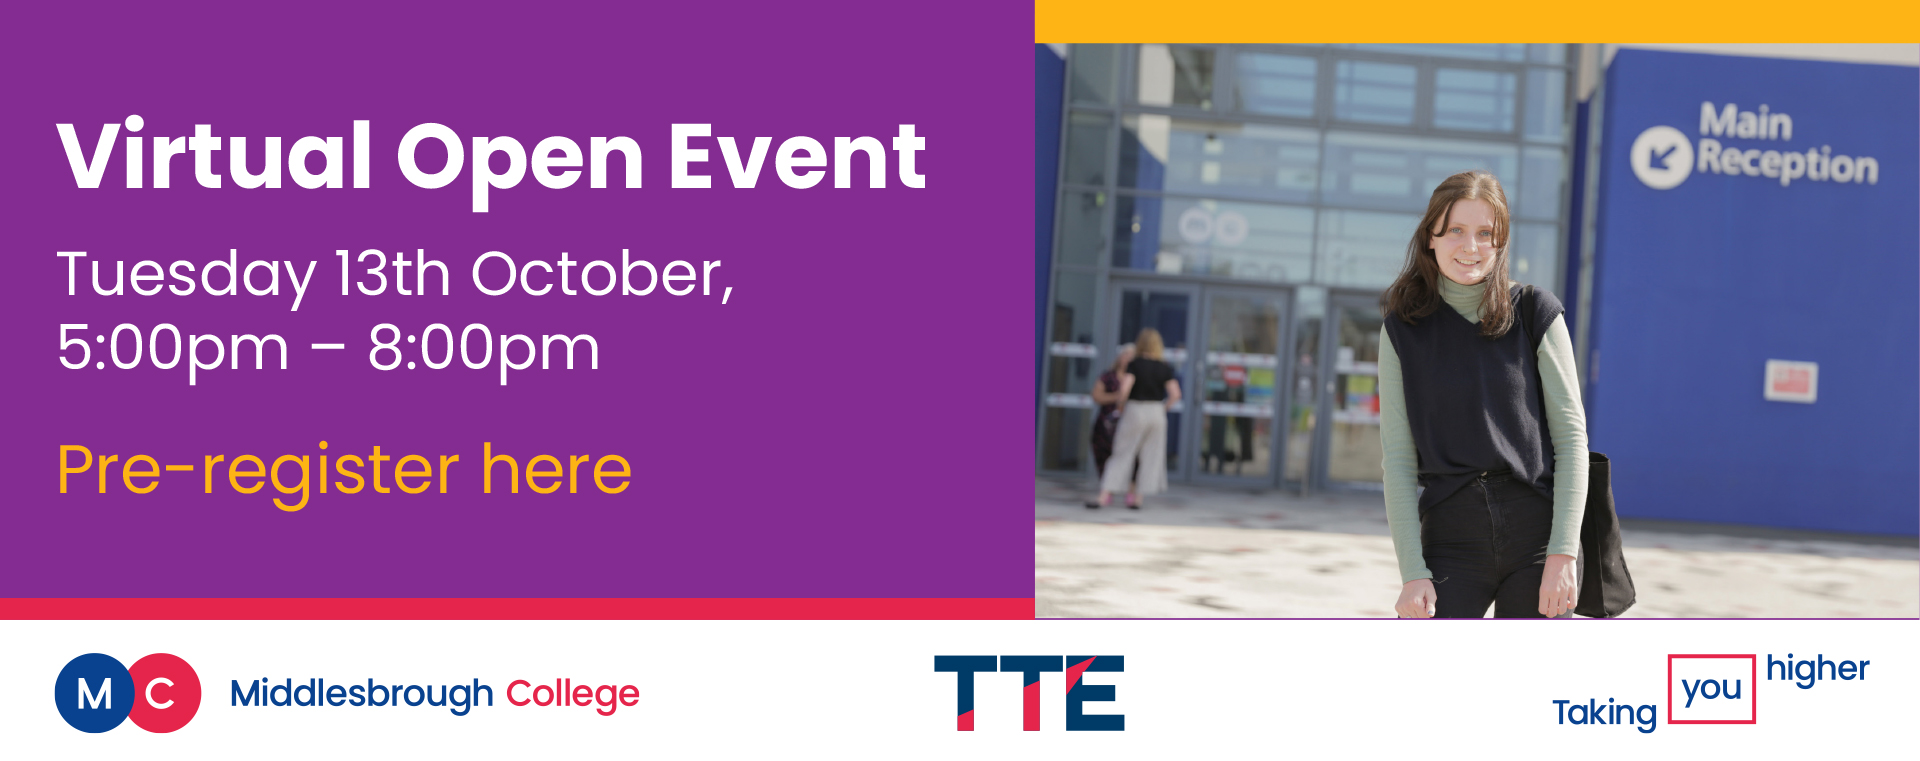 Middlesbrough College Virtual Open Event